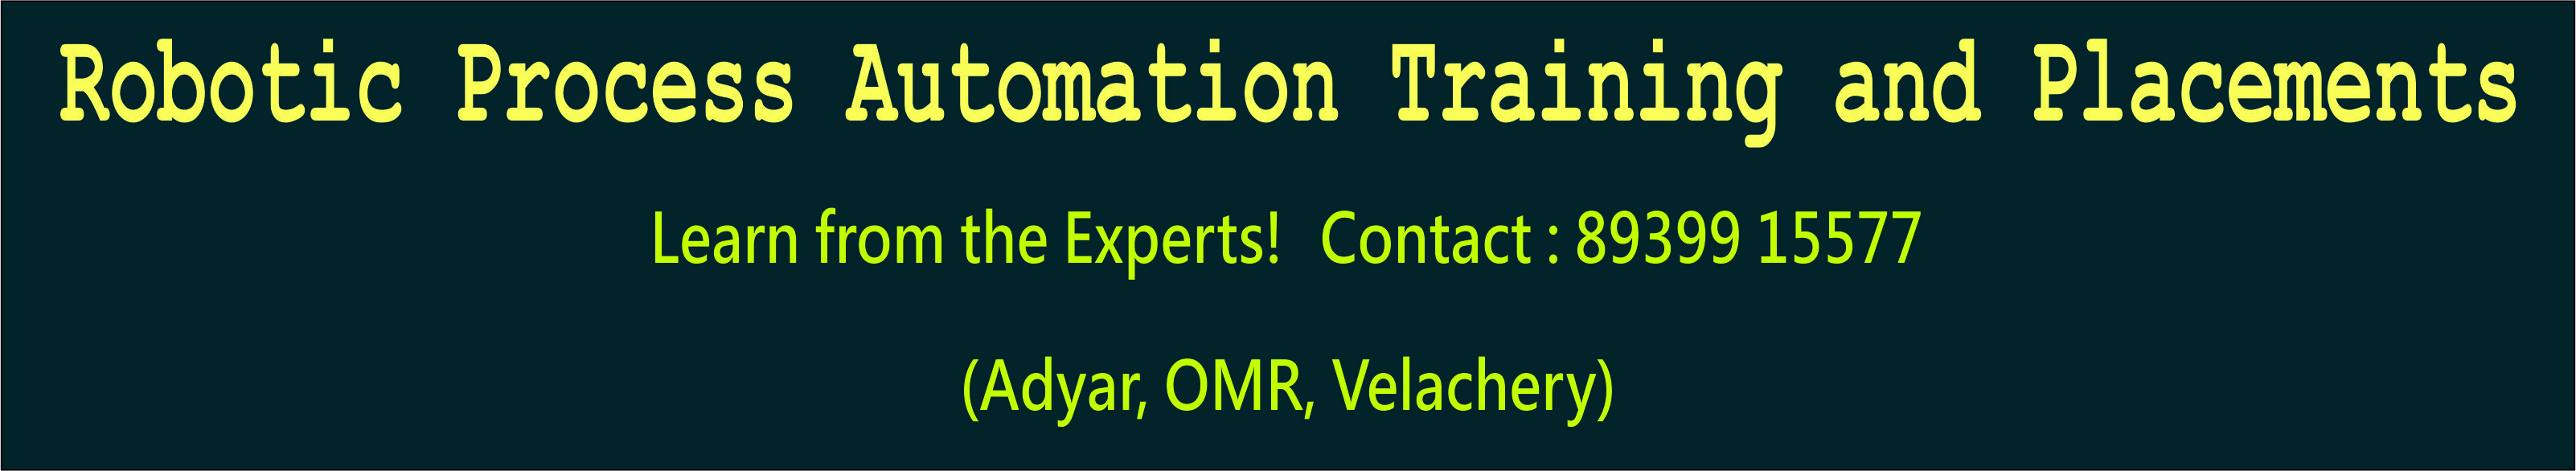 RPA Training in Chennai